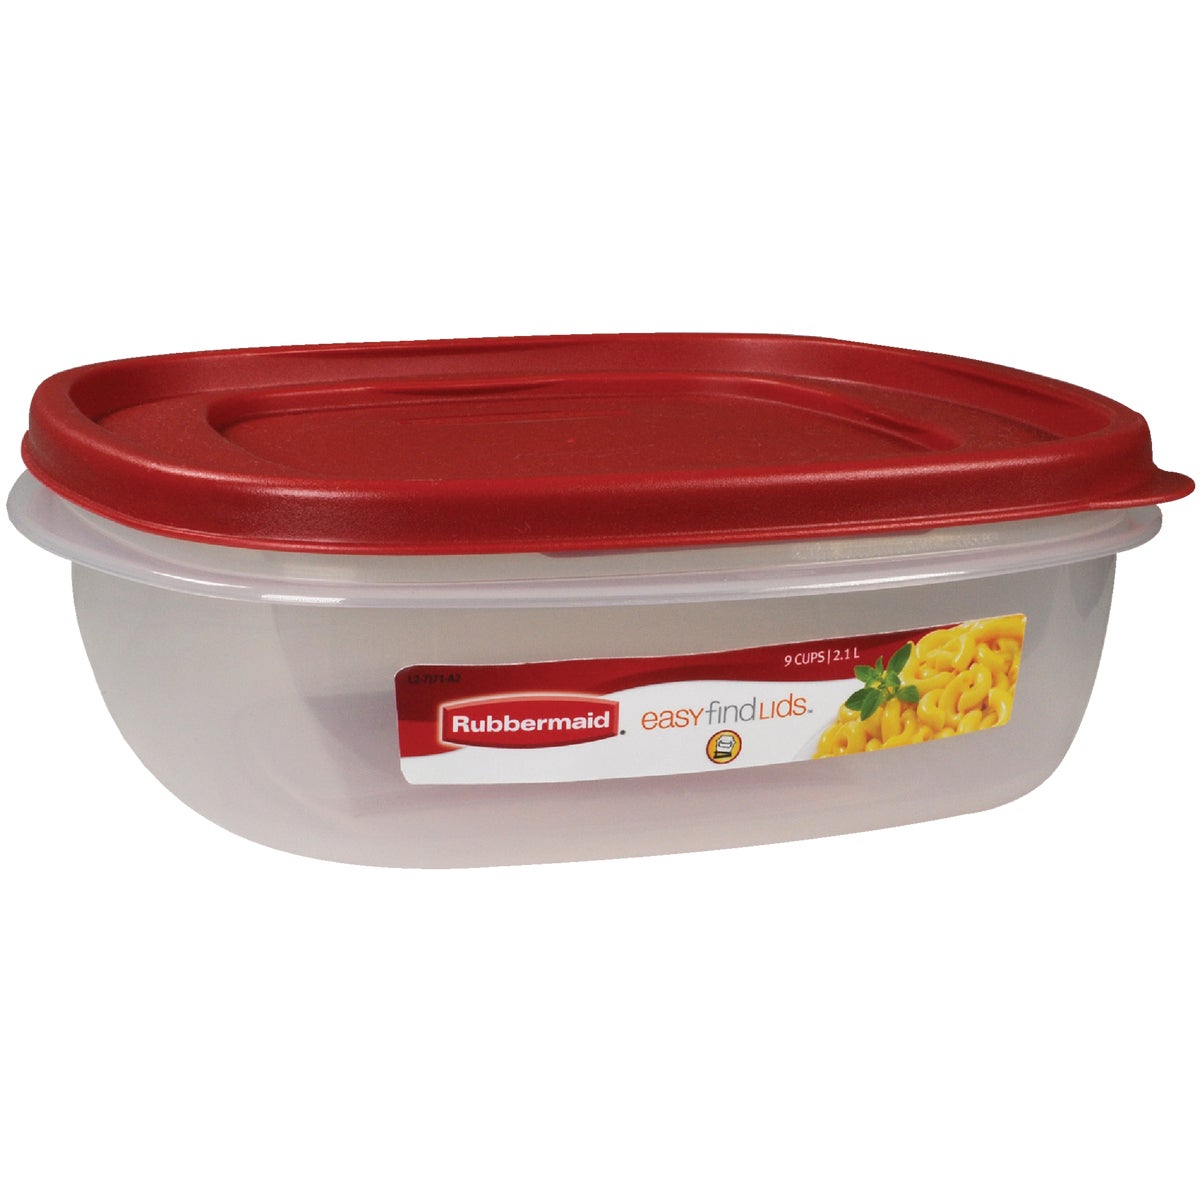 9 CUP FOOD CONTAINER - 1777090 by Rubbermaid Home